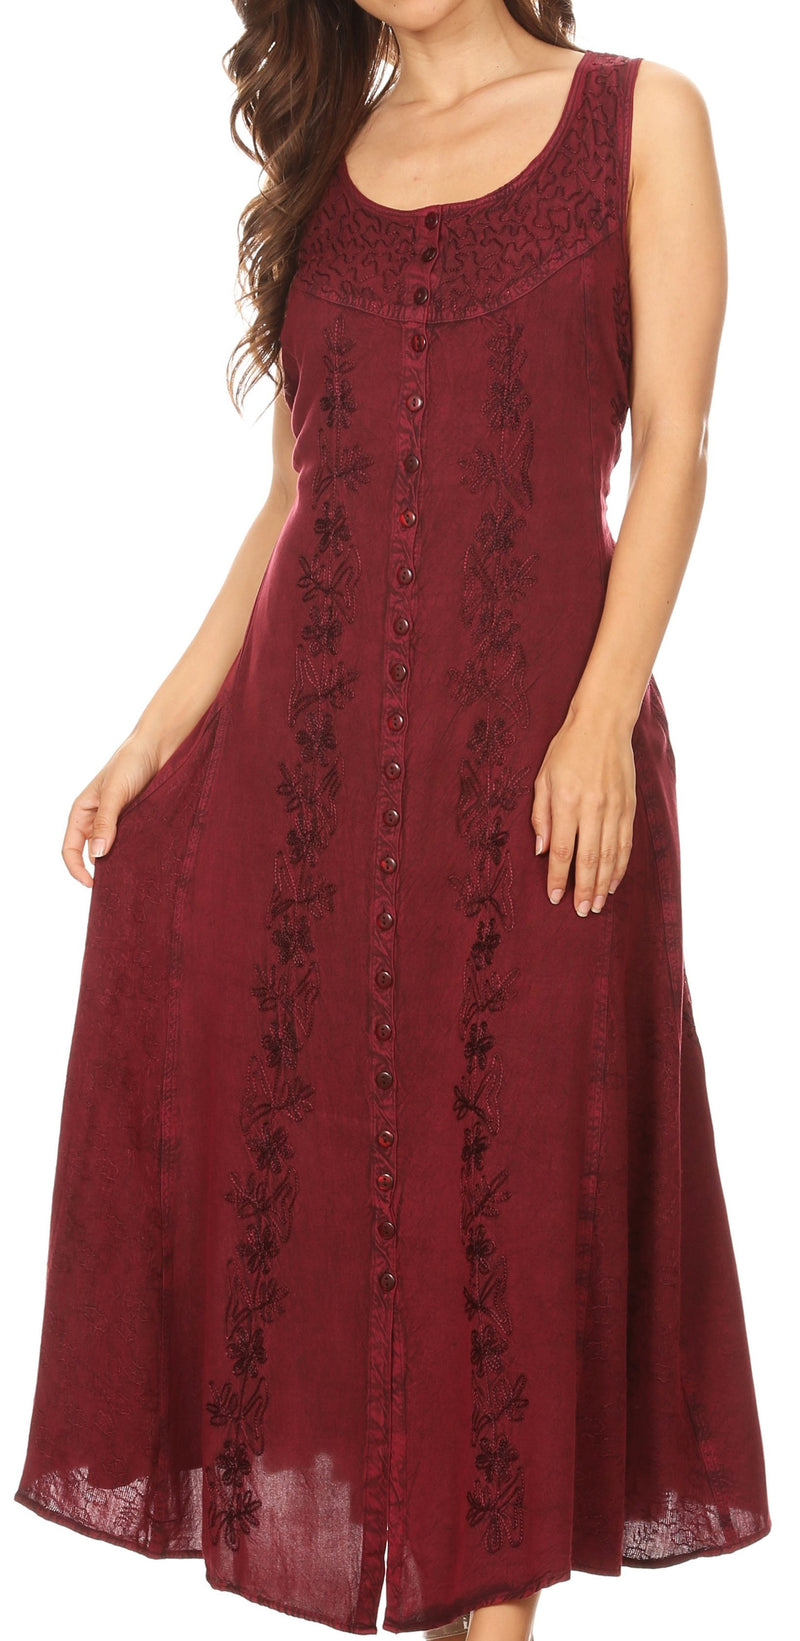 Sakkas Maya Floral Embroidered Sleeveless Button Up Rayon Dress